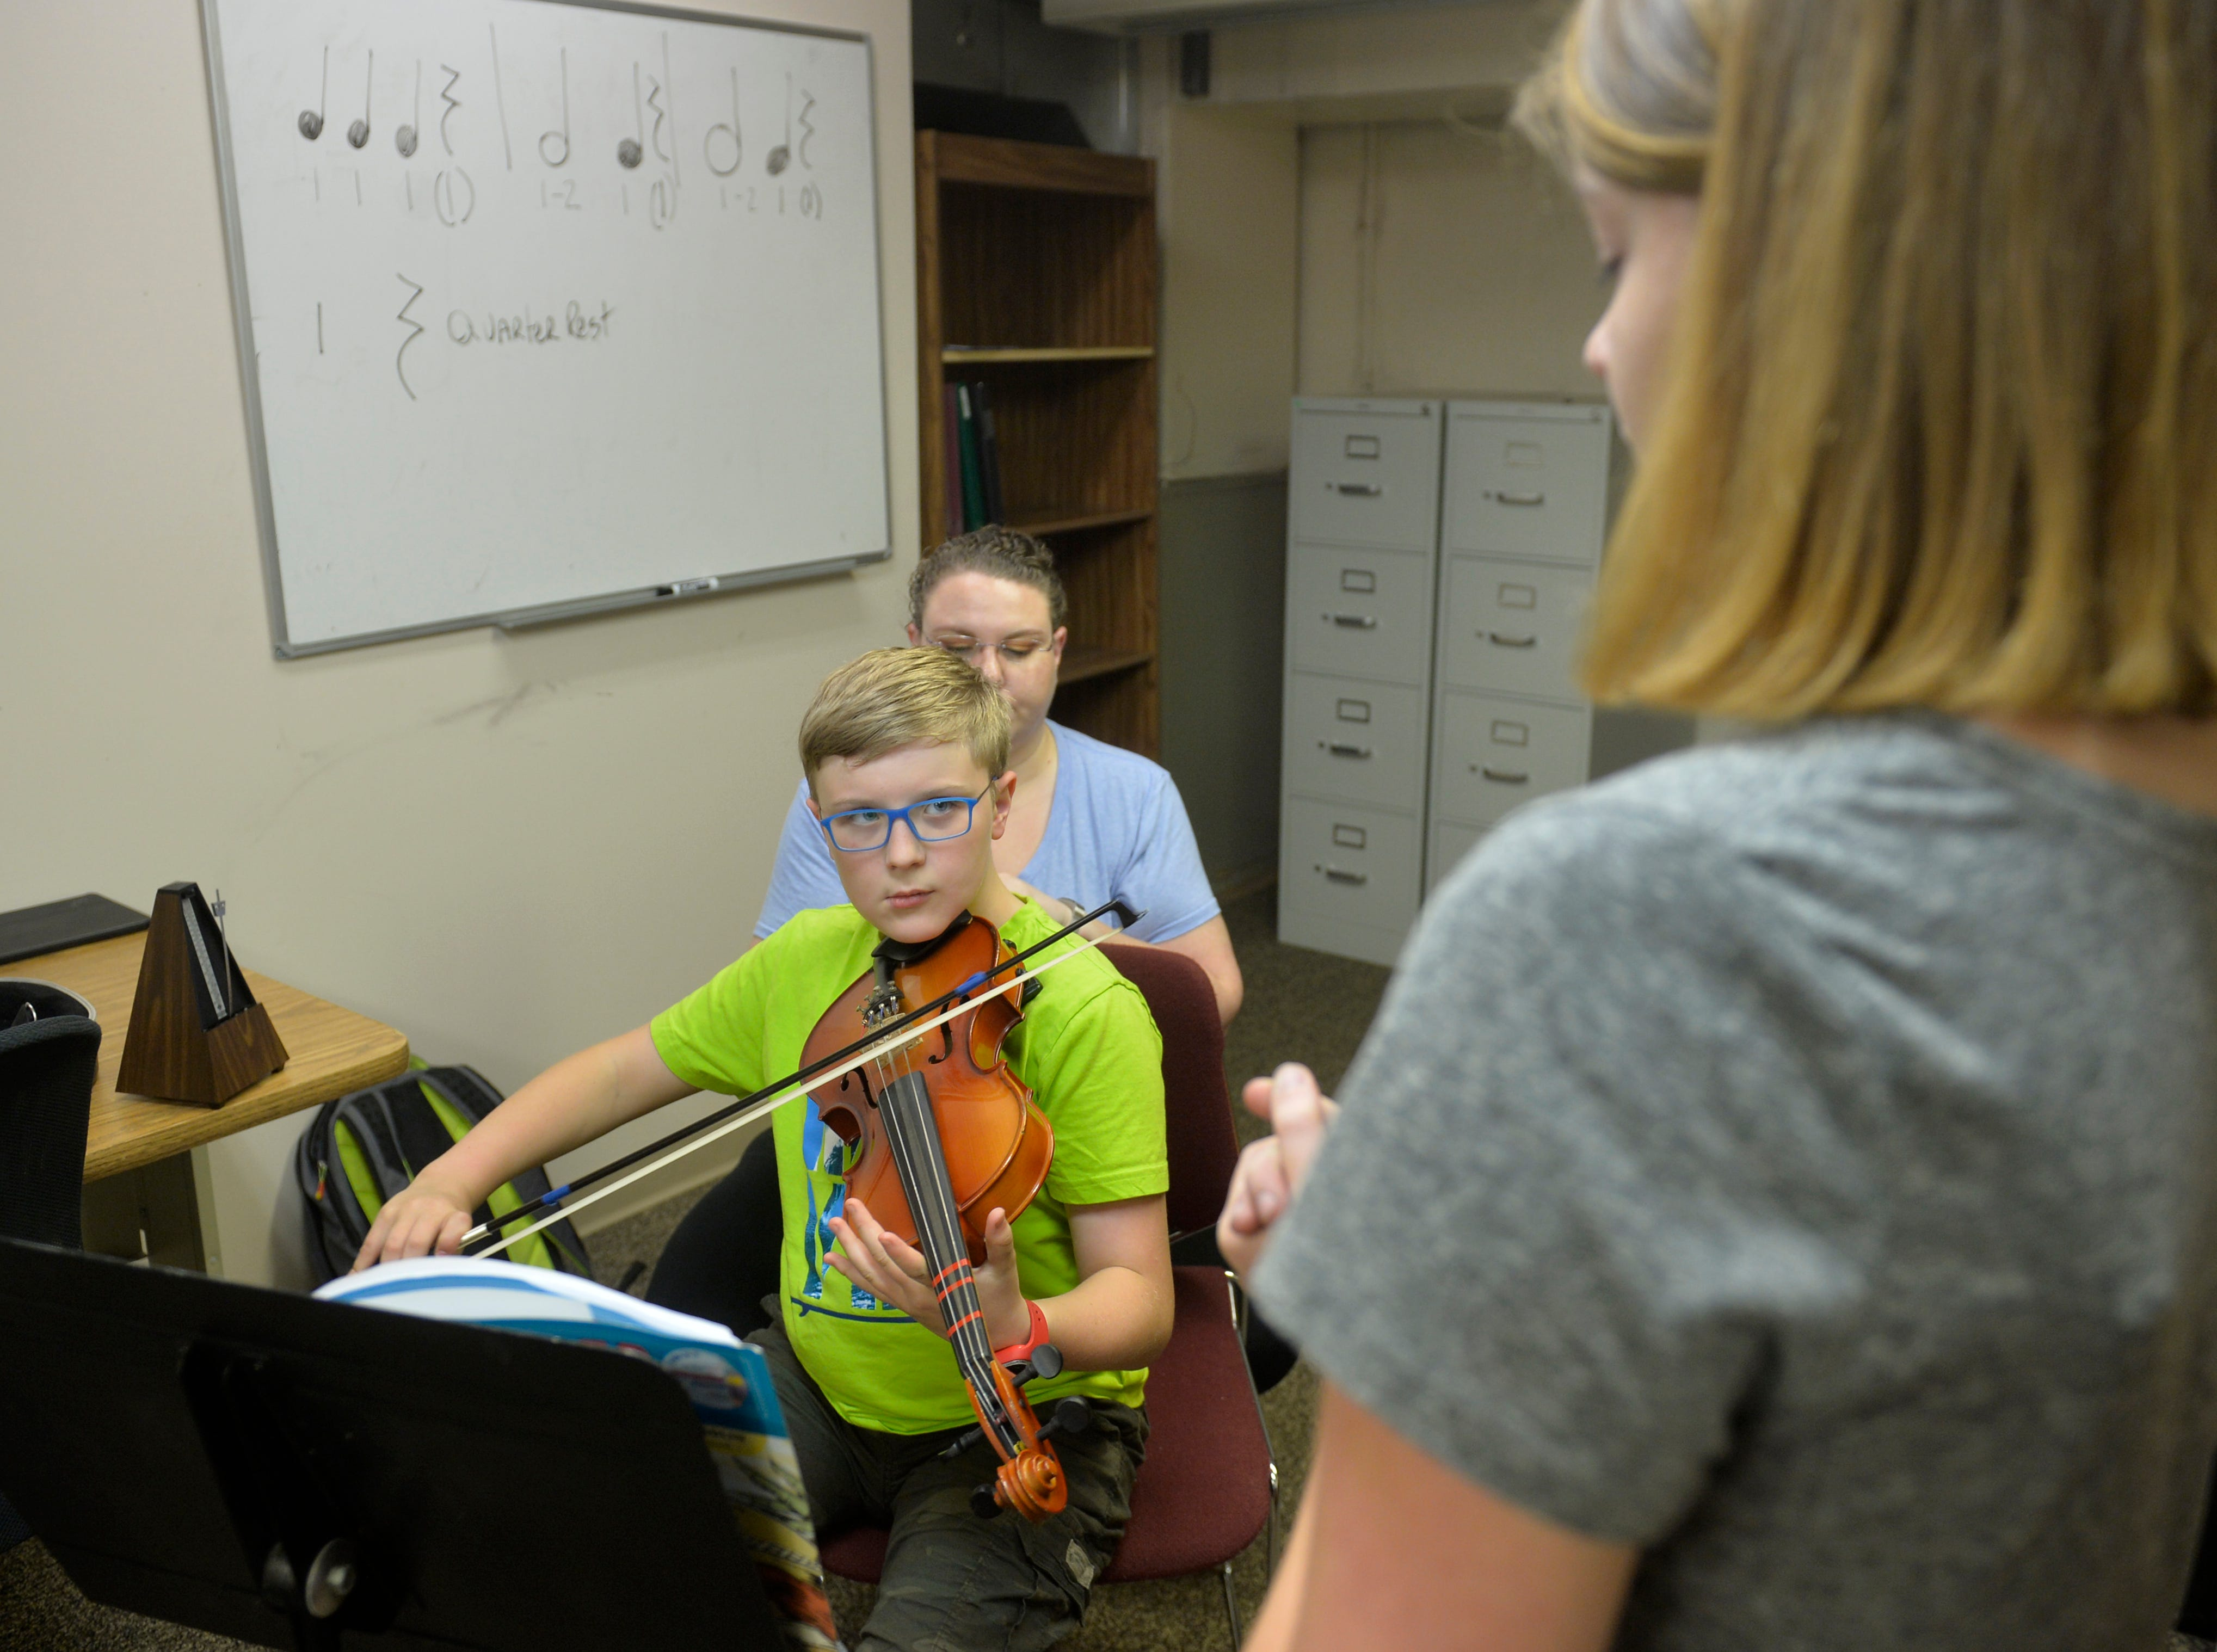 D.J. Loessberg takes a violin lesson from Kailey Dunbar at the Bass Clef School of Music and Fine Arts, recently.